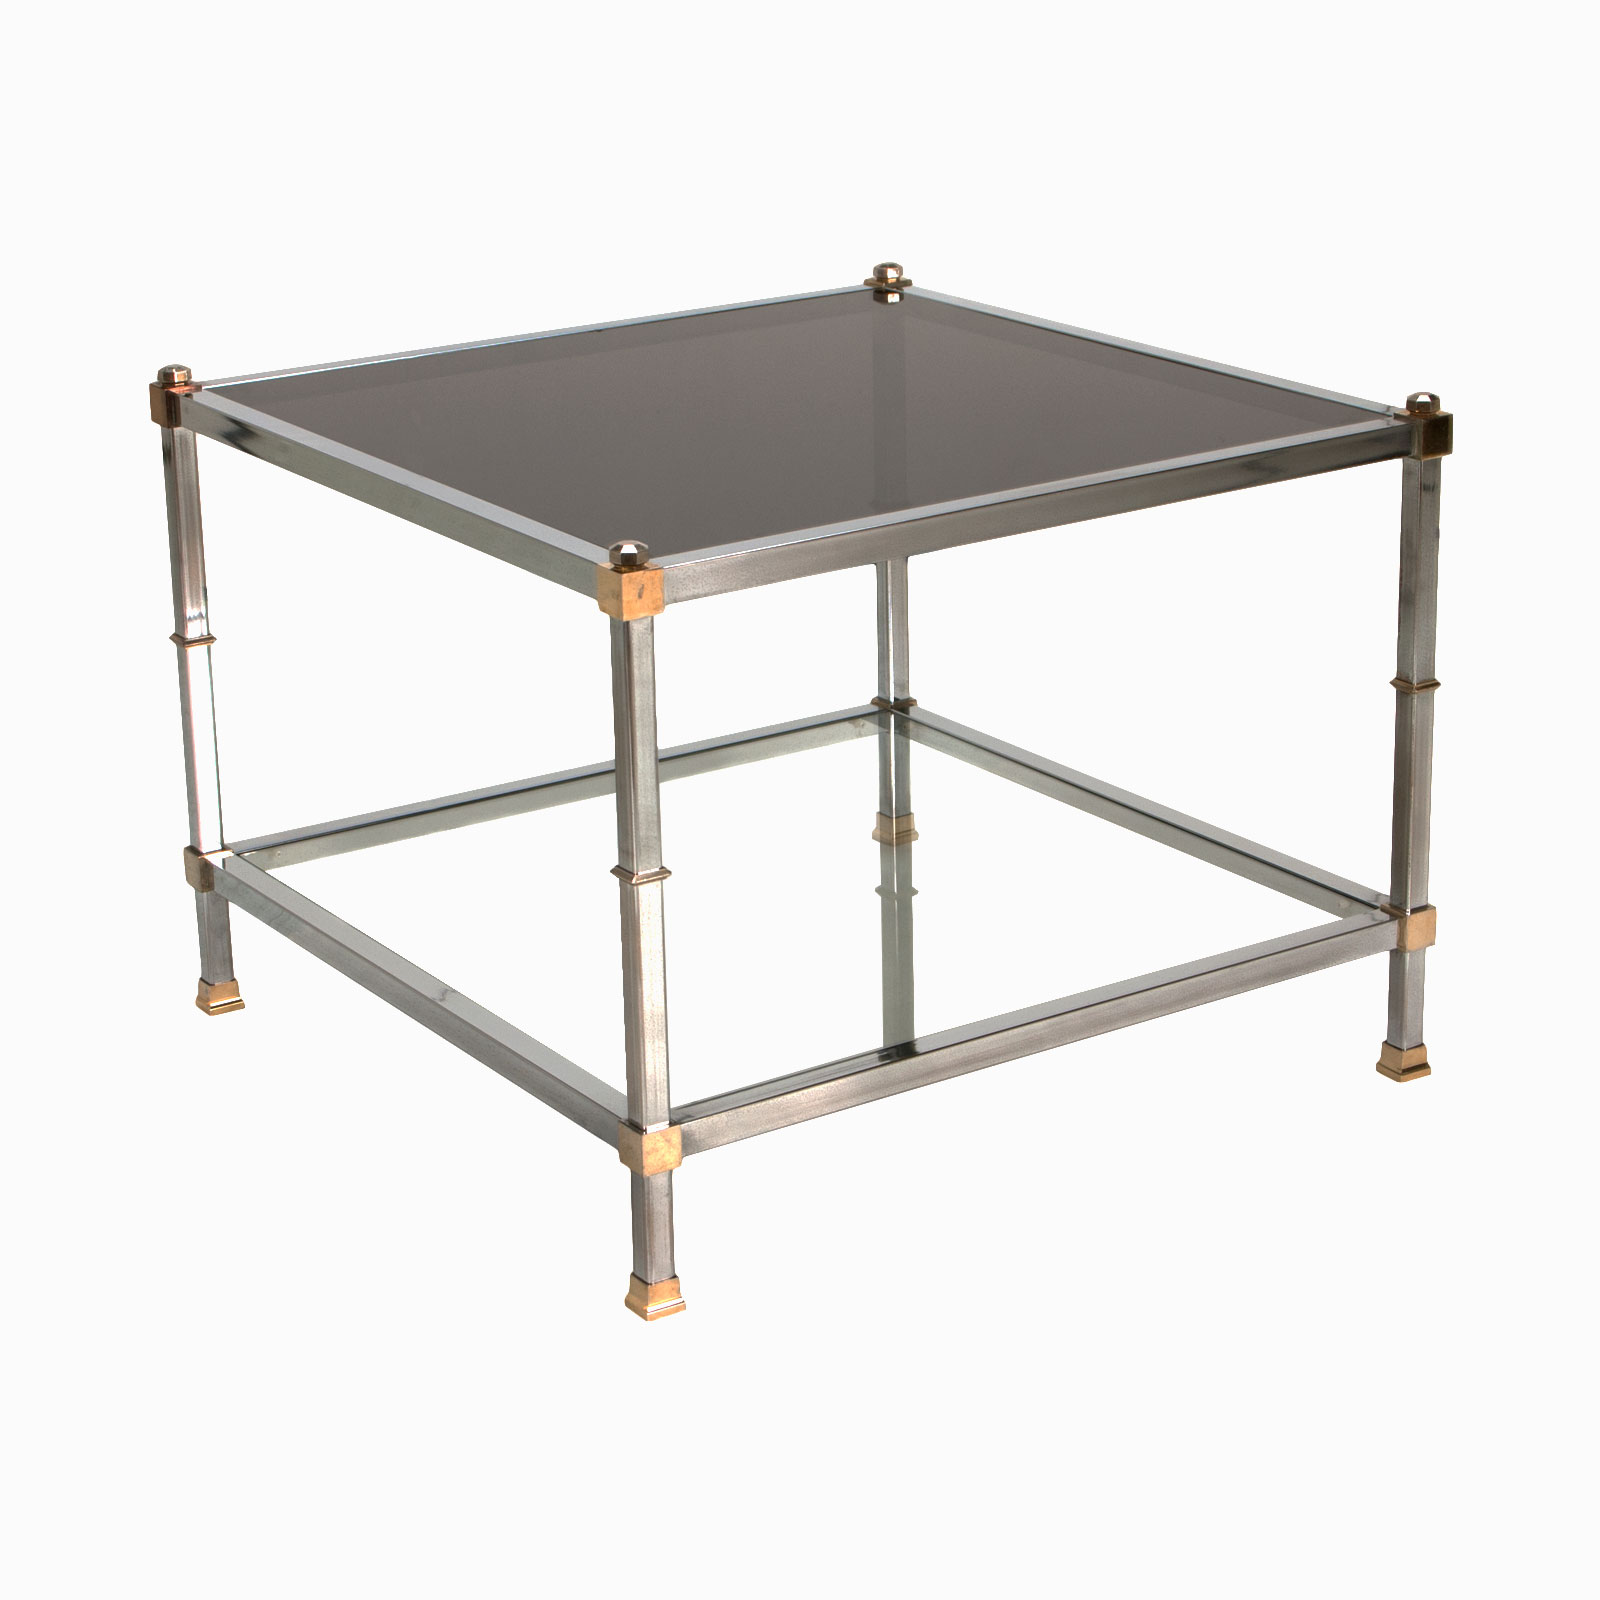 Draco Side Table Square Formdecor